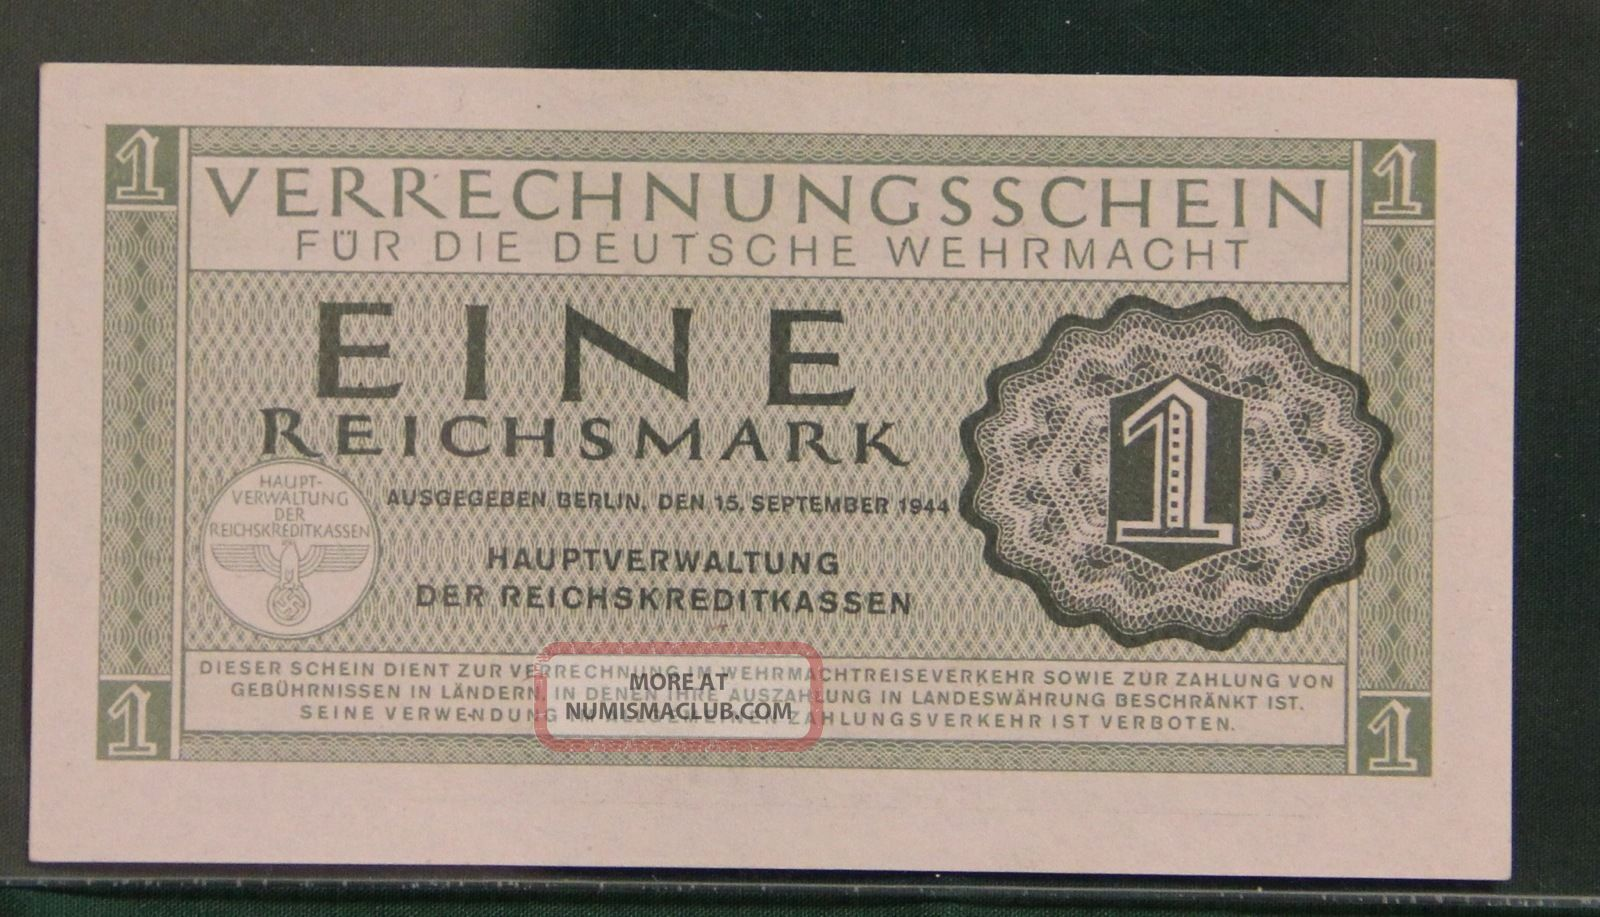 P  M38  Uncirculated Banknotes 1  REICHSMARK  1944 GERMANY